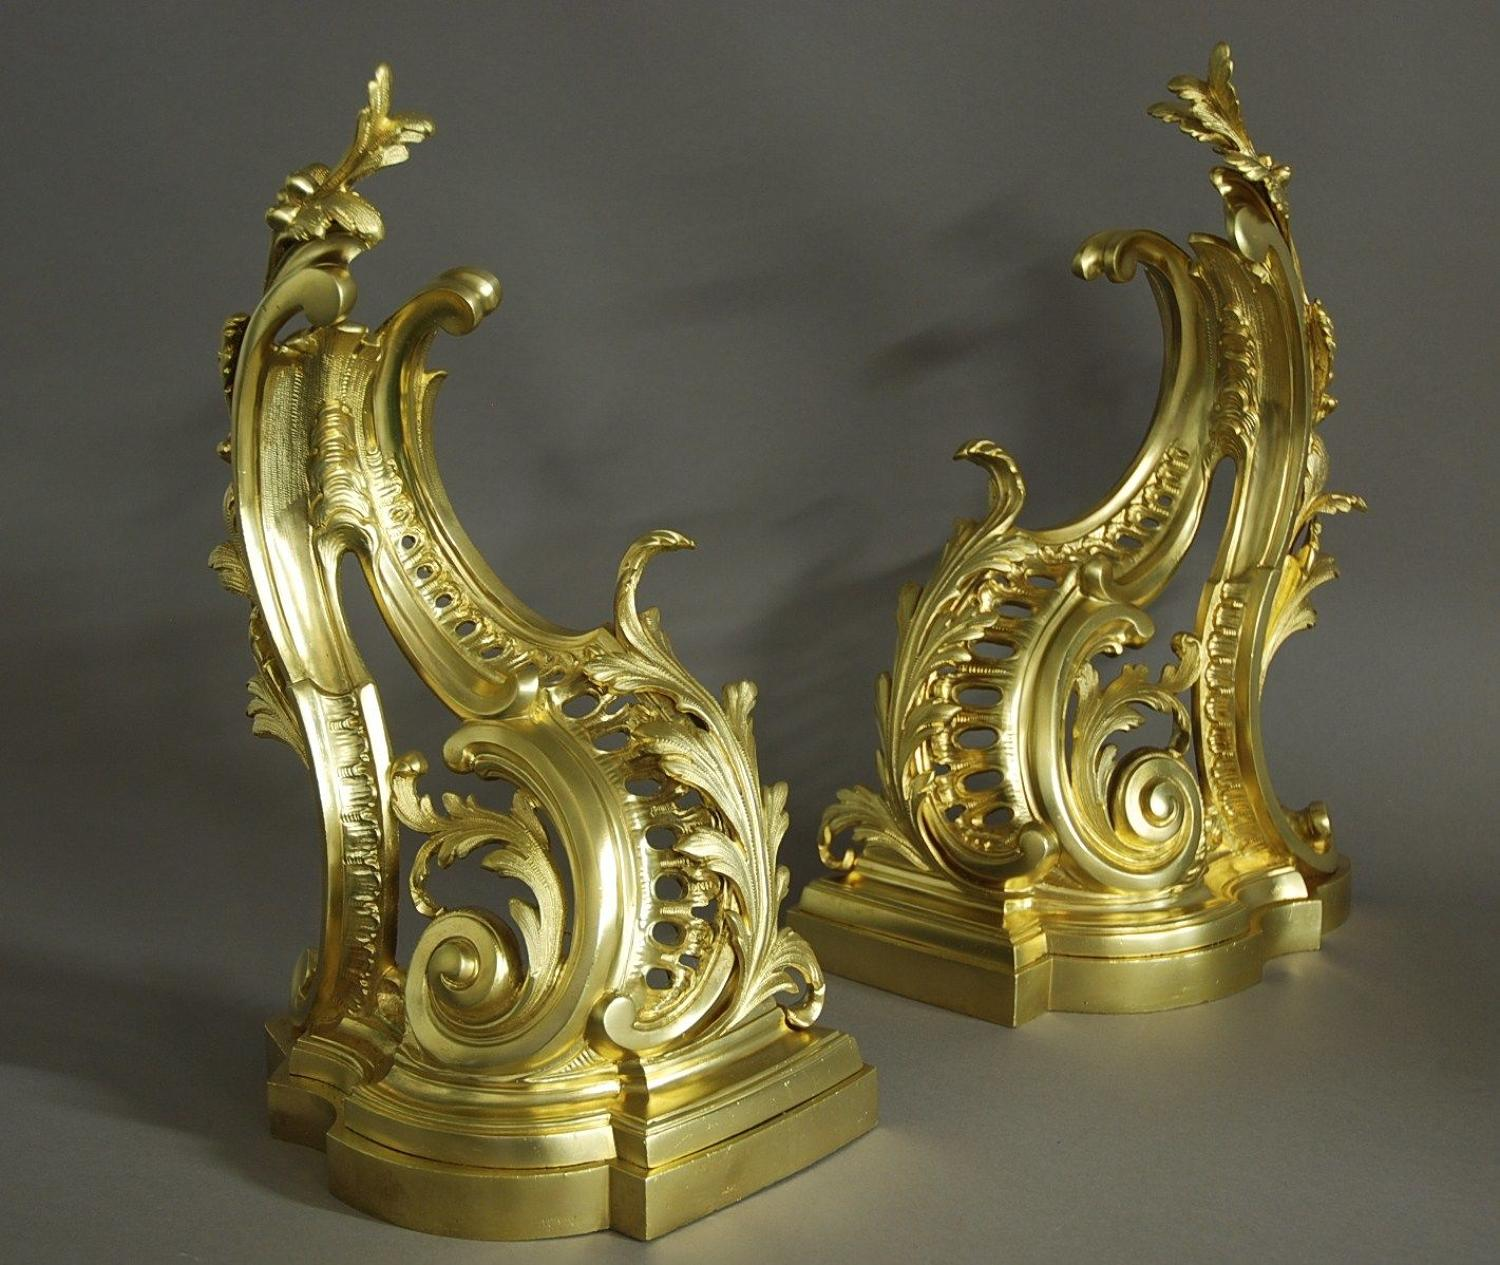 Fine quality pair of French Rococo style ormolu chenets (or fire dogs)